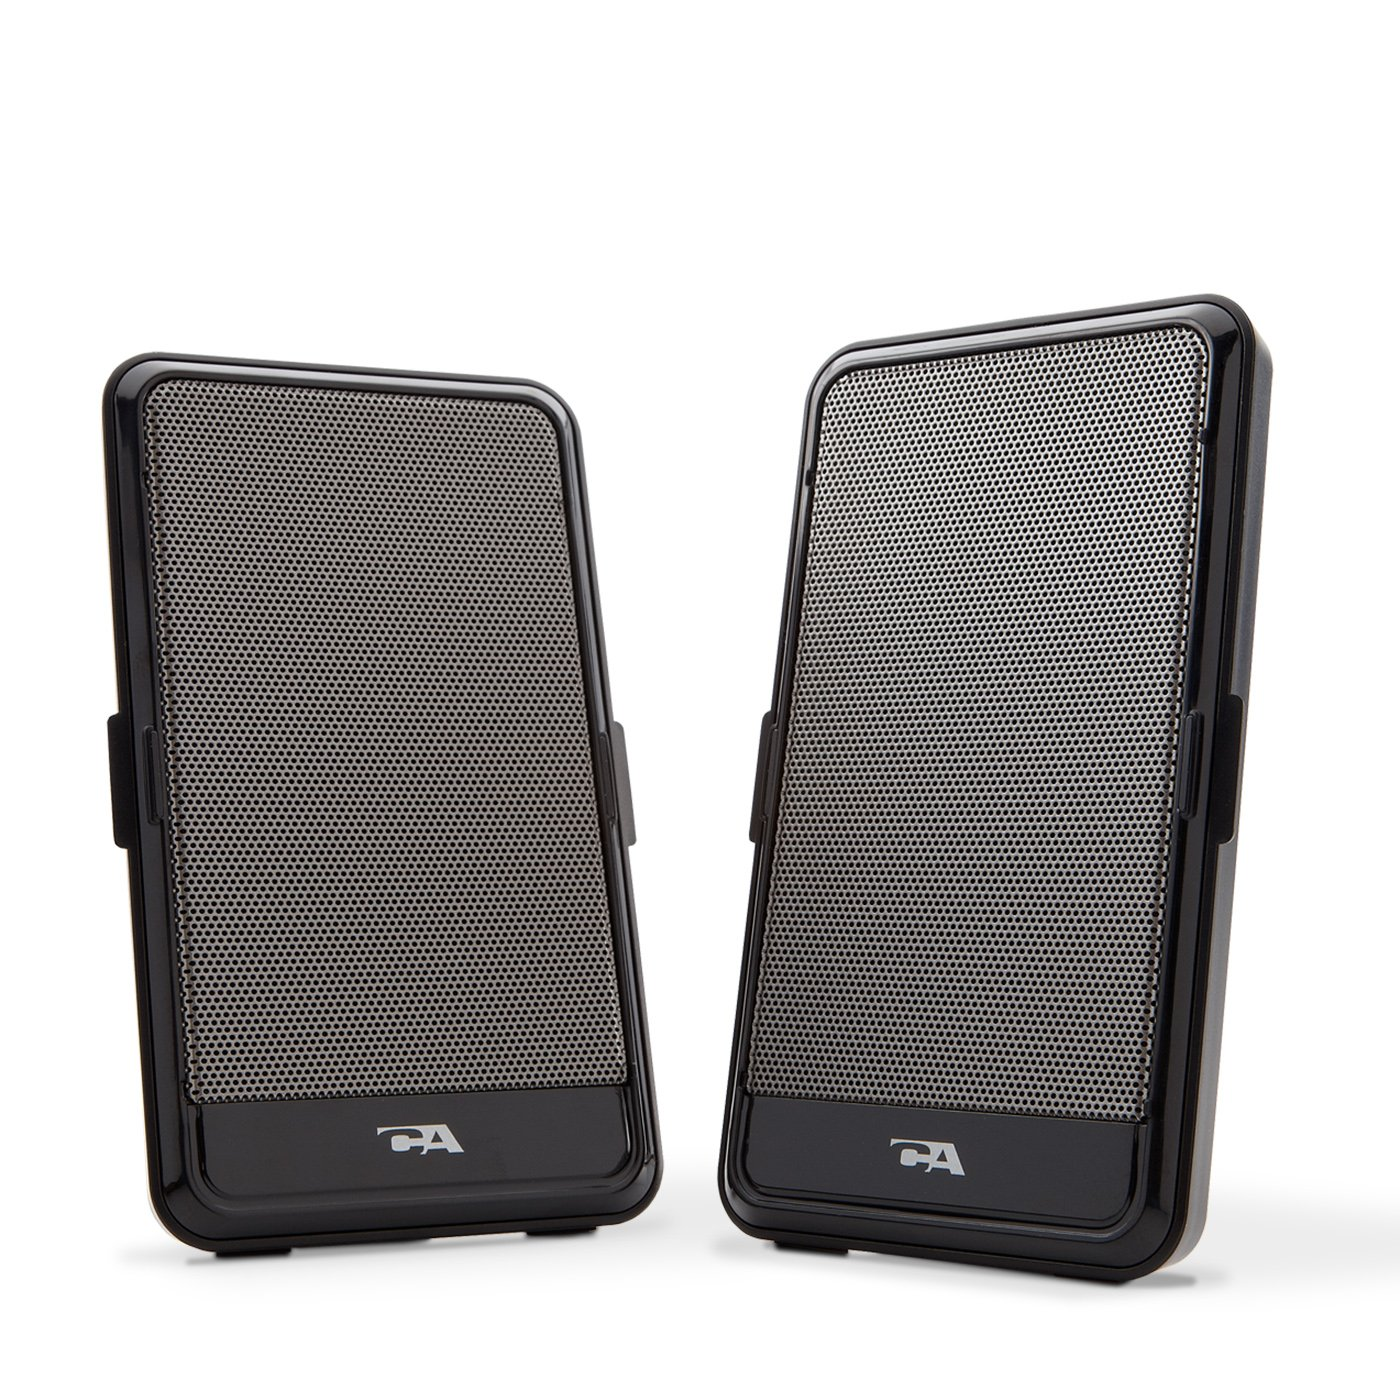 Usb Powered 2pc.Black Speaker Portable Design Cyber Acoustics CA-2988 MP3 & Media Player Accessories